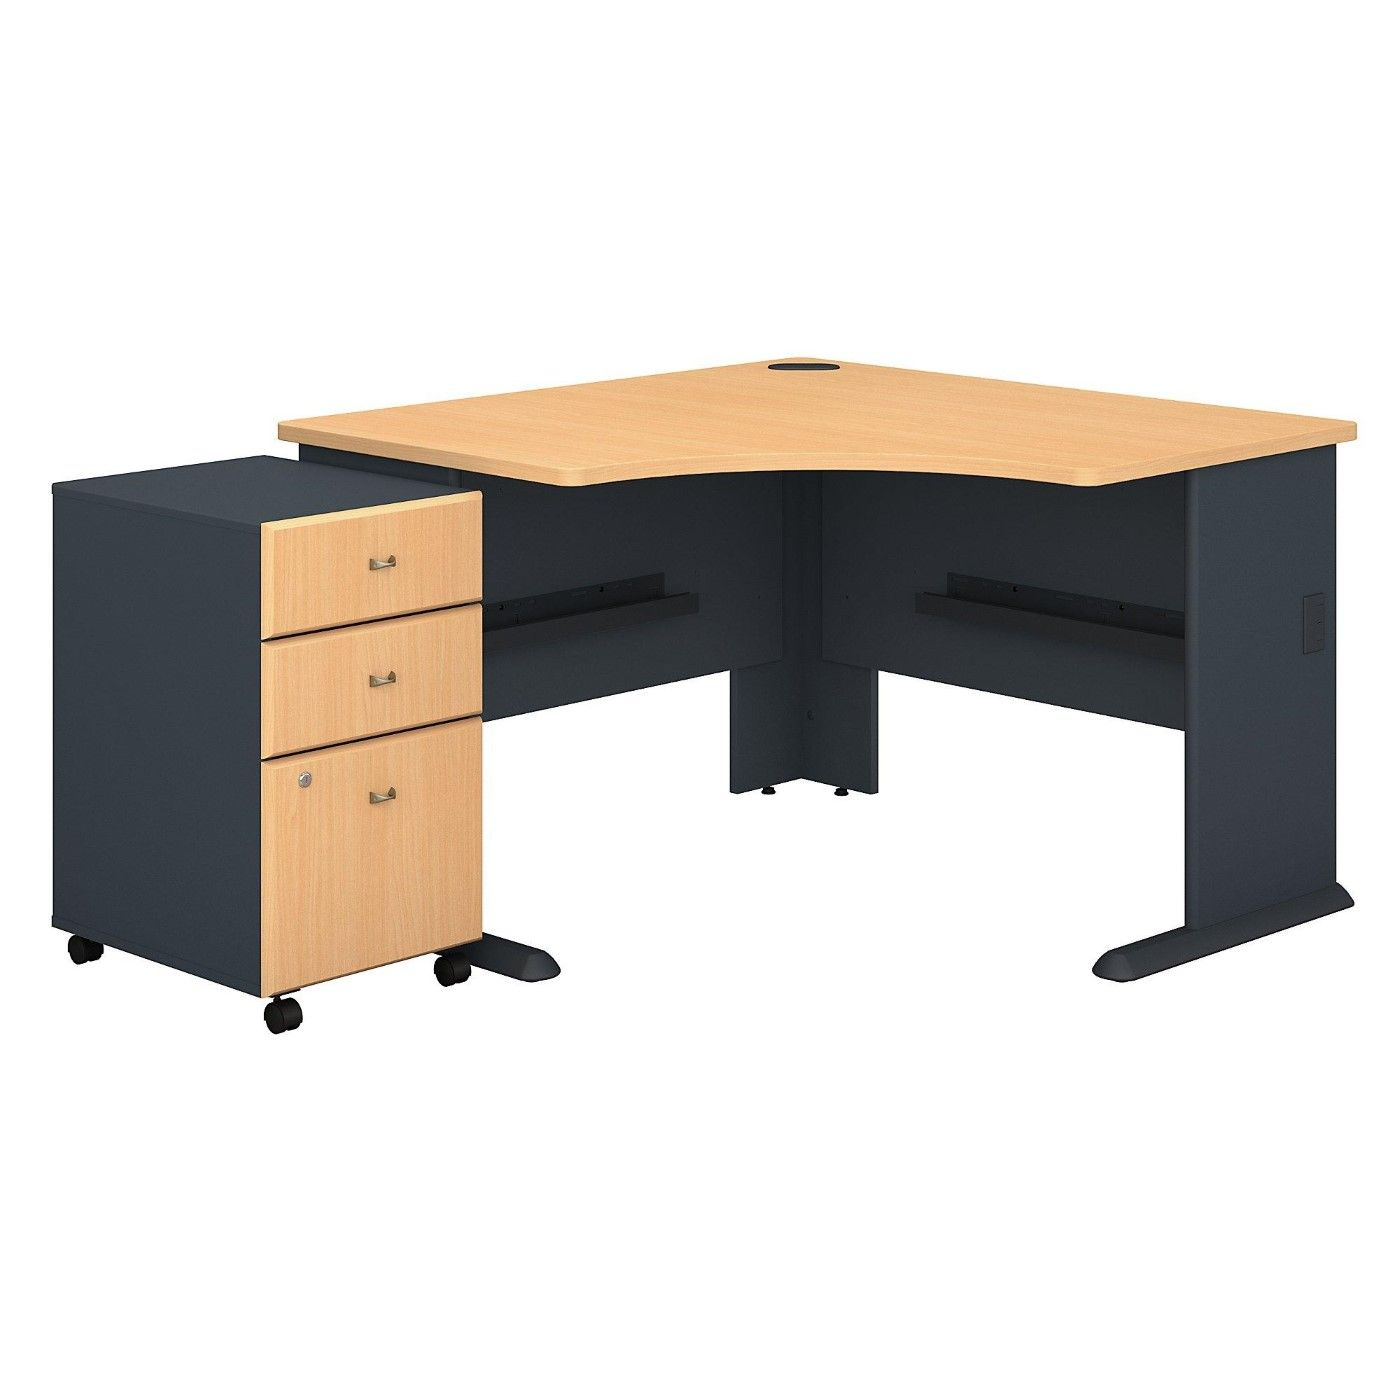 BUSH BUSINESS FURNITURE SERIES A 48W CORNER DESK WITH MOBILE FILE CABINET EH-SRA035BESU. FREE SHIPPING</font></b></font></b>&#x1F384<font color=red><b>ERGONOMICHOME HOLIDAY SALE - ENDS DEC. 17, 2019</b></font>&#x1F384